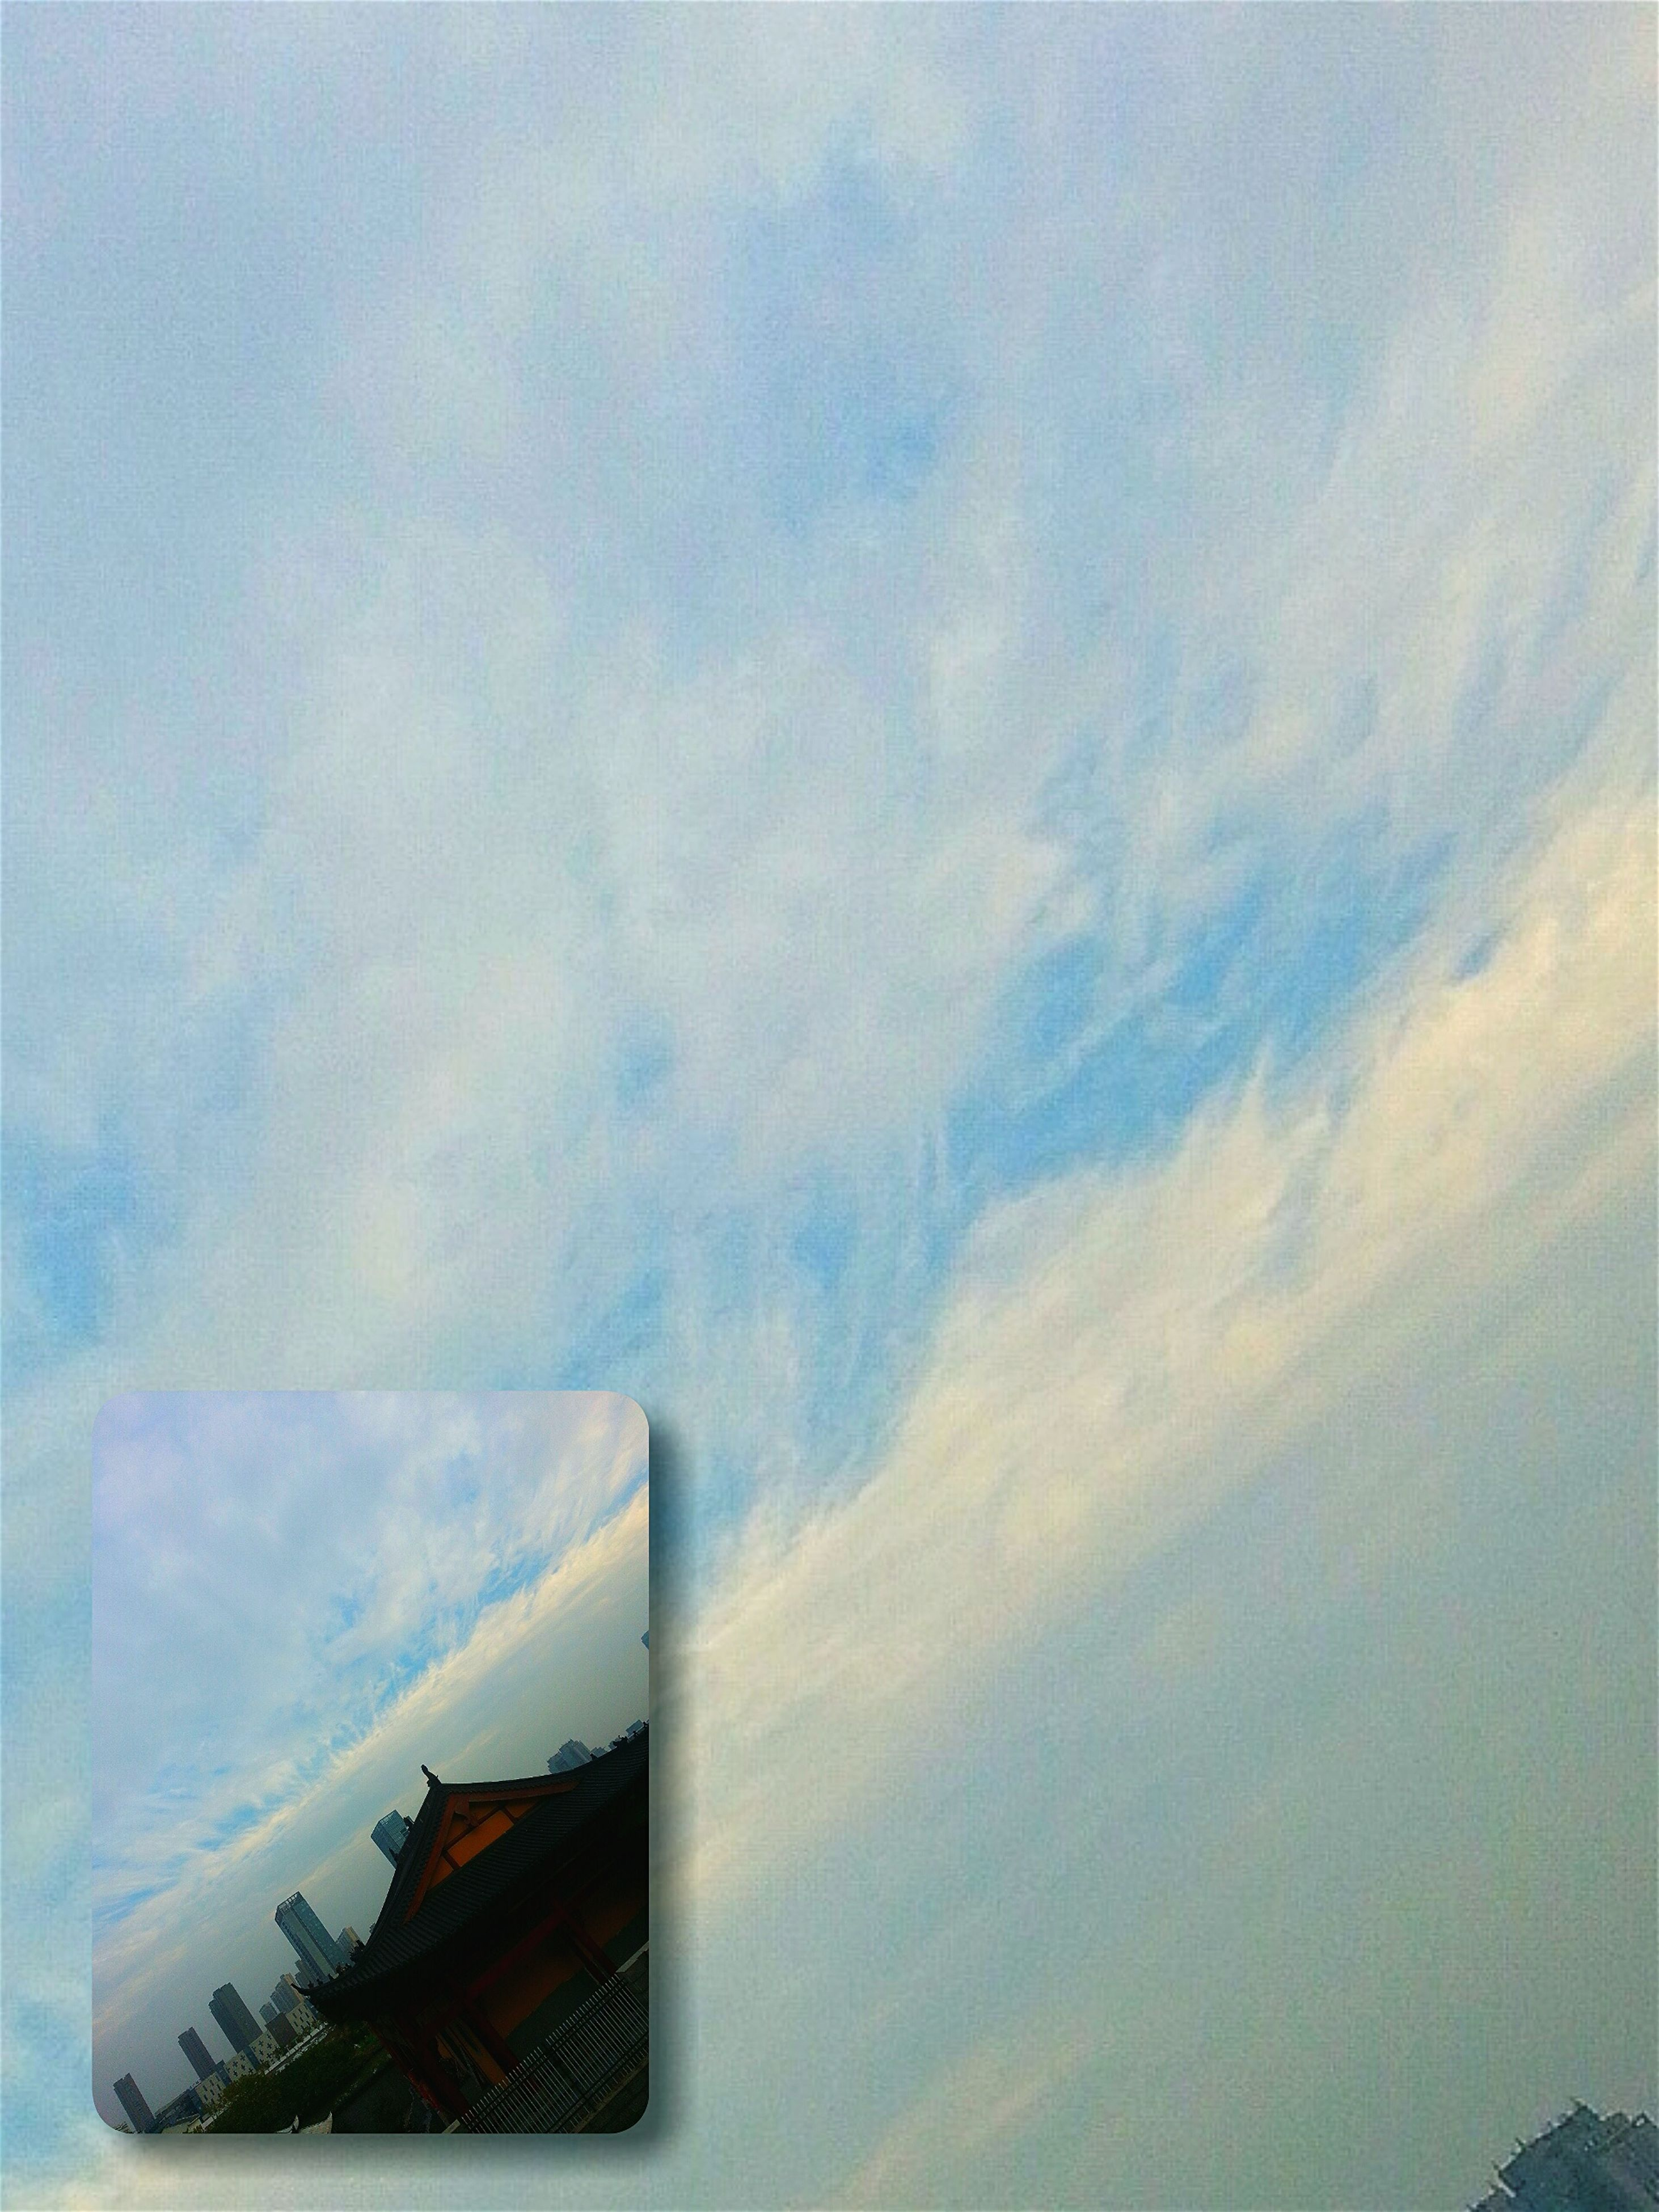 sky, no people, cloud - sky, low angle view, nature, outdoors, built structure, day, beauty in nature, architecture